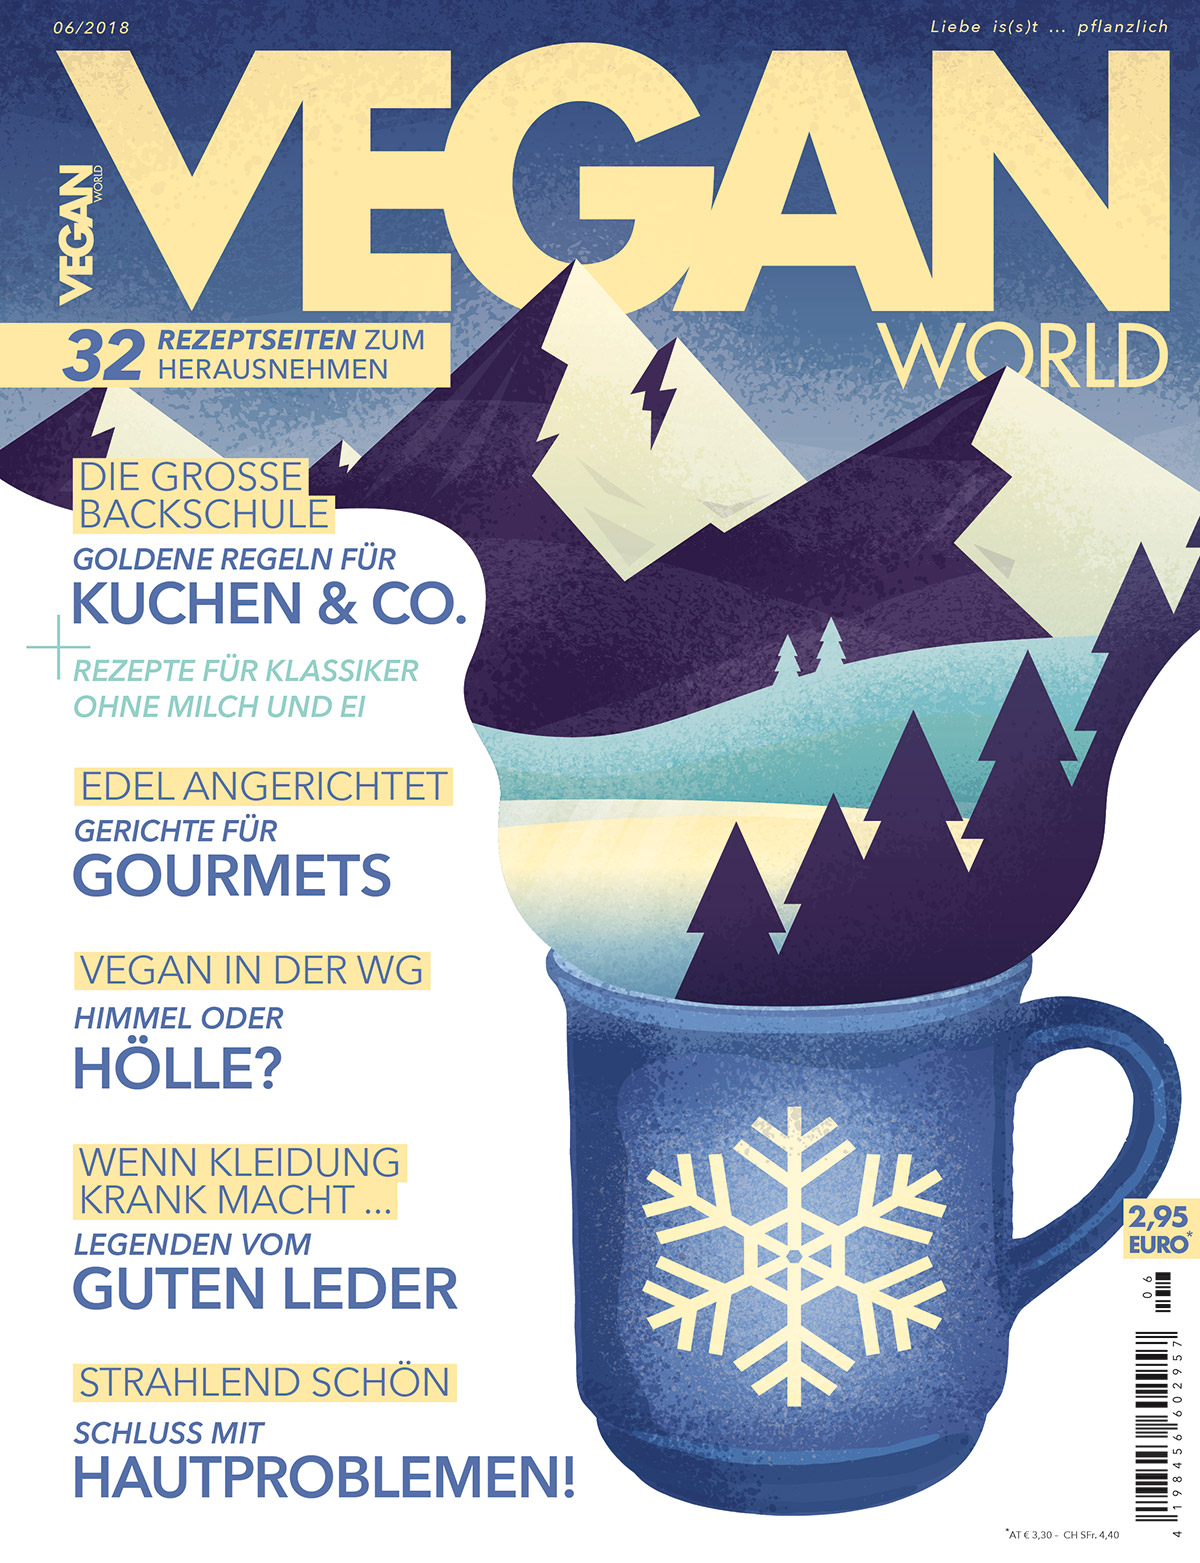 Vegan World 06 2018